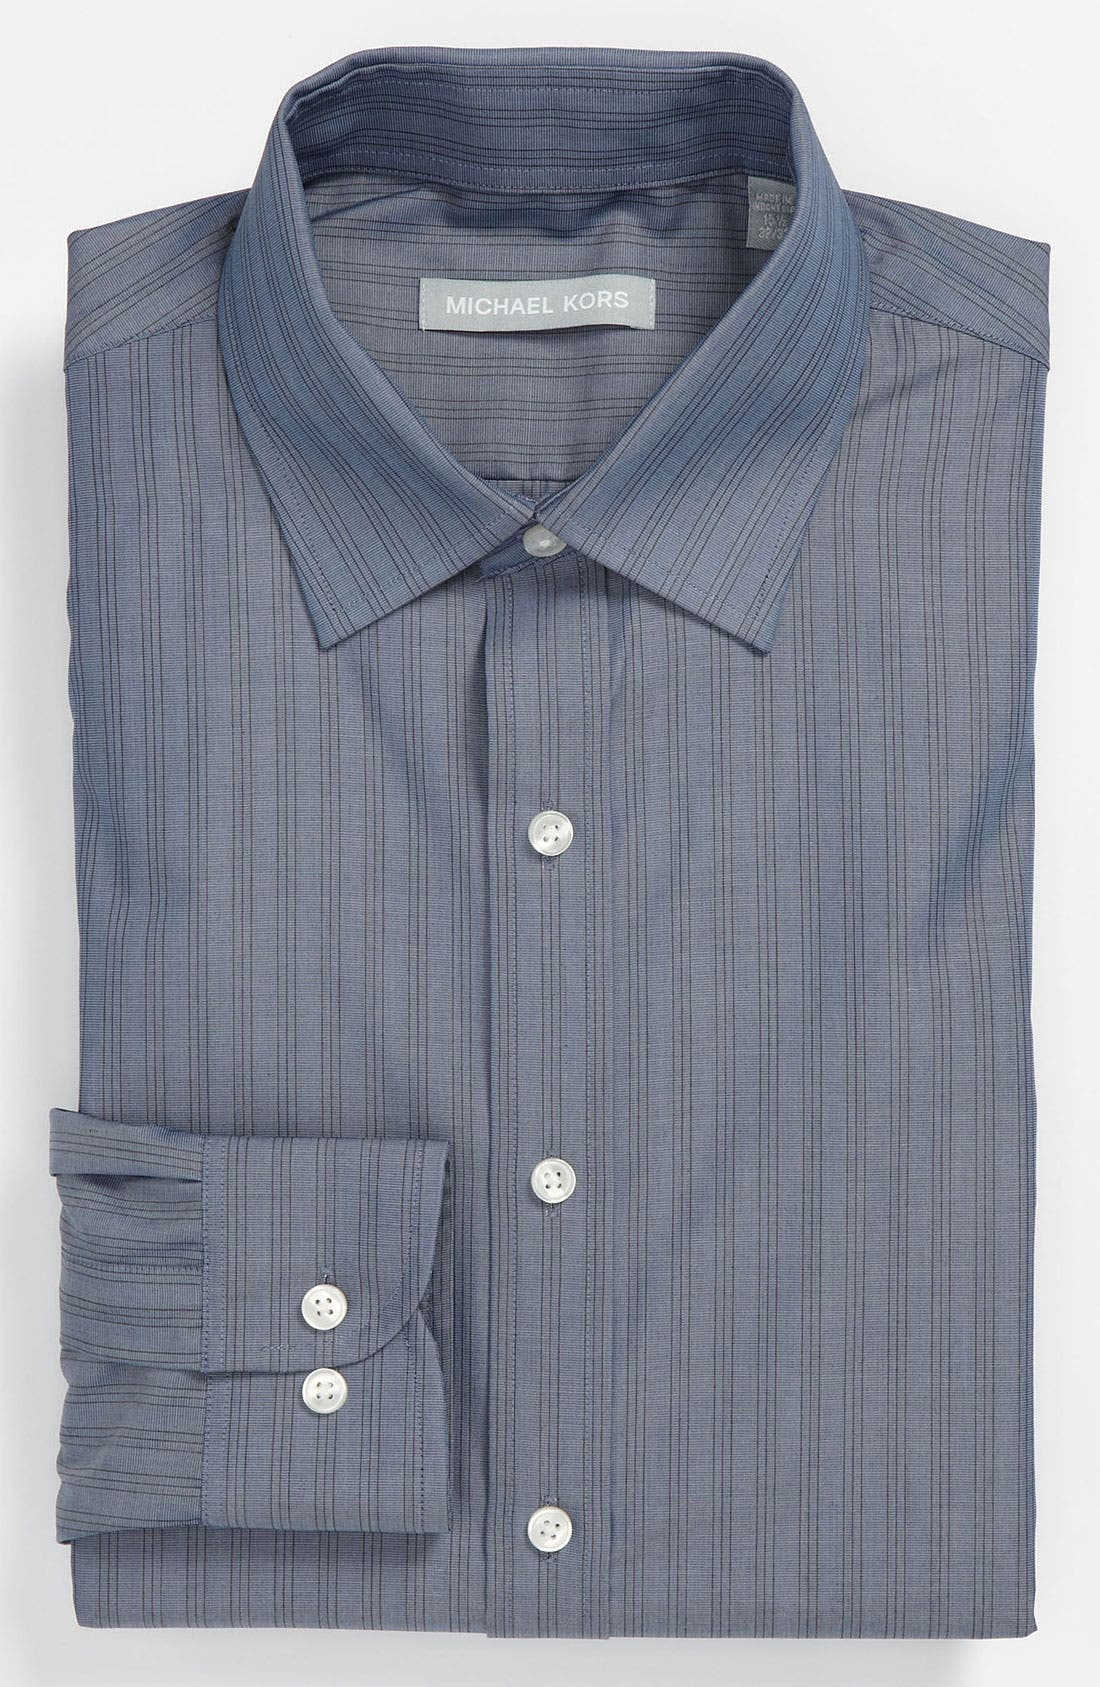 Main Image - Michael Kors Regular Fit Non-Iron Dress Shirt